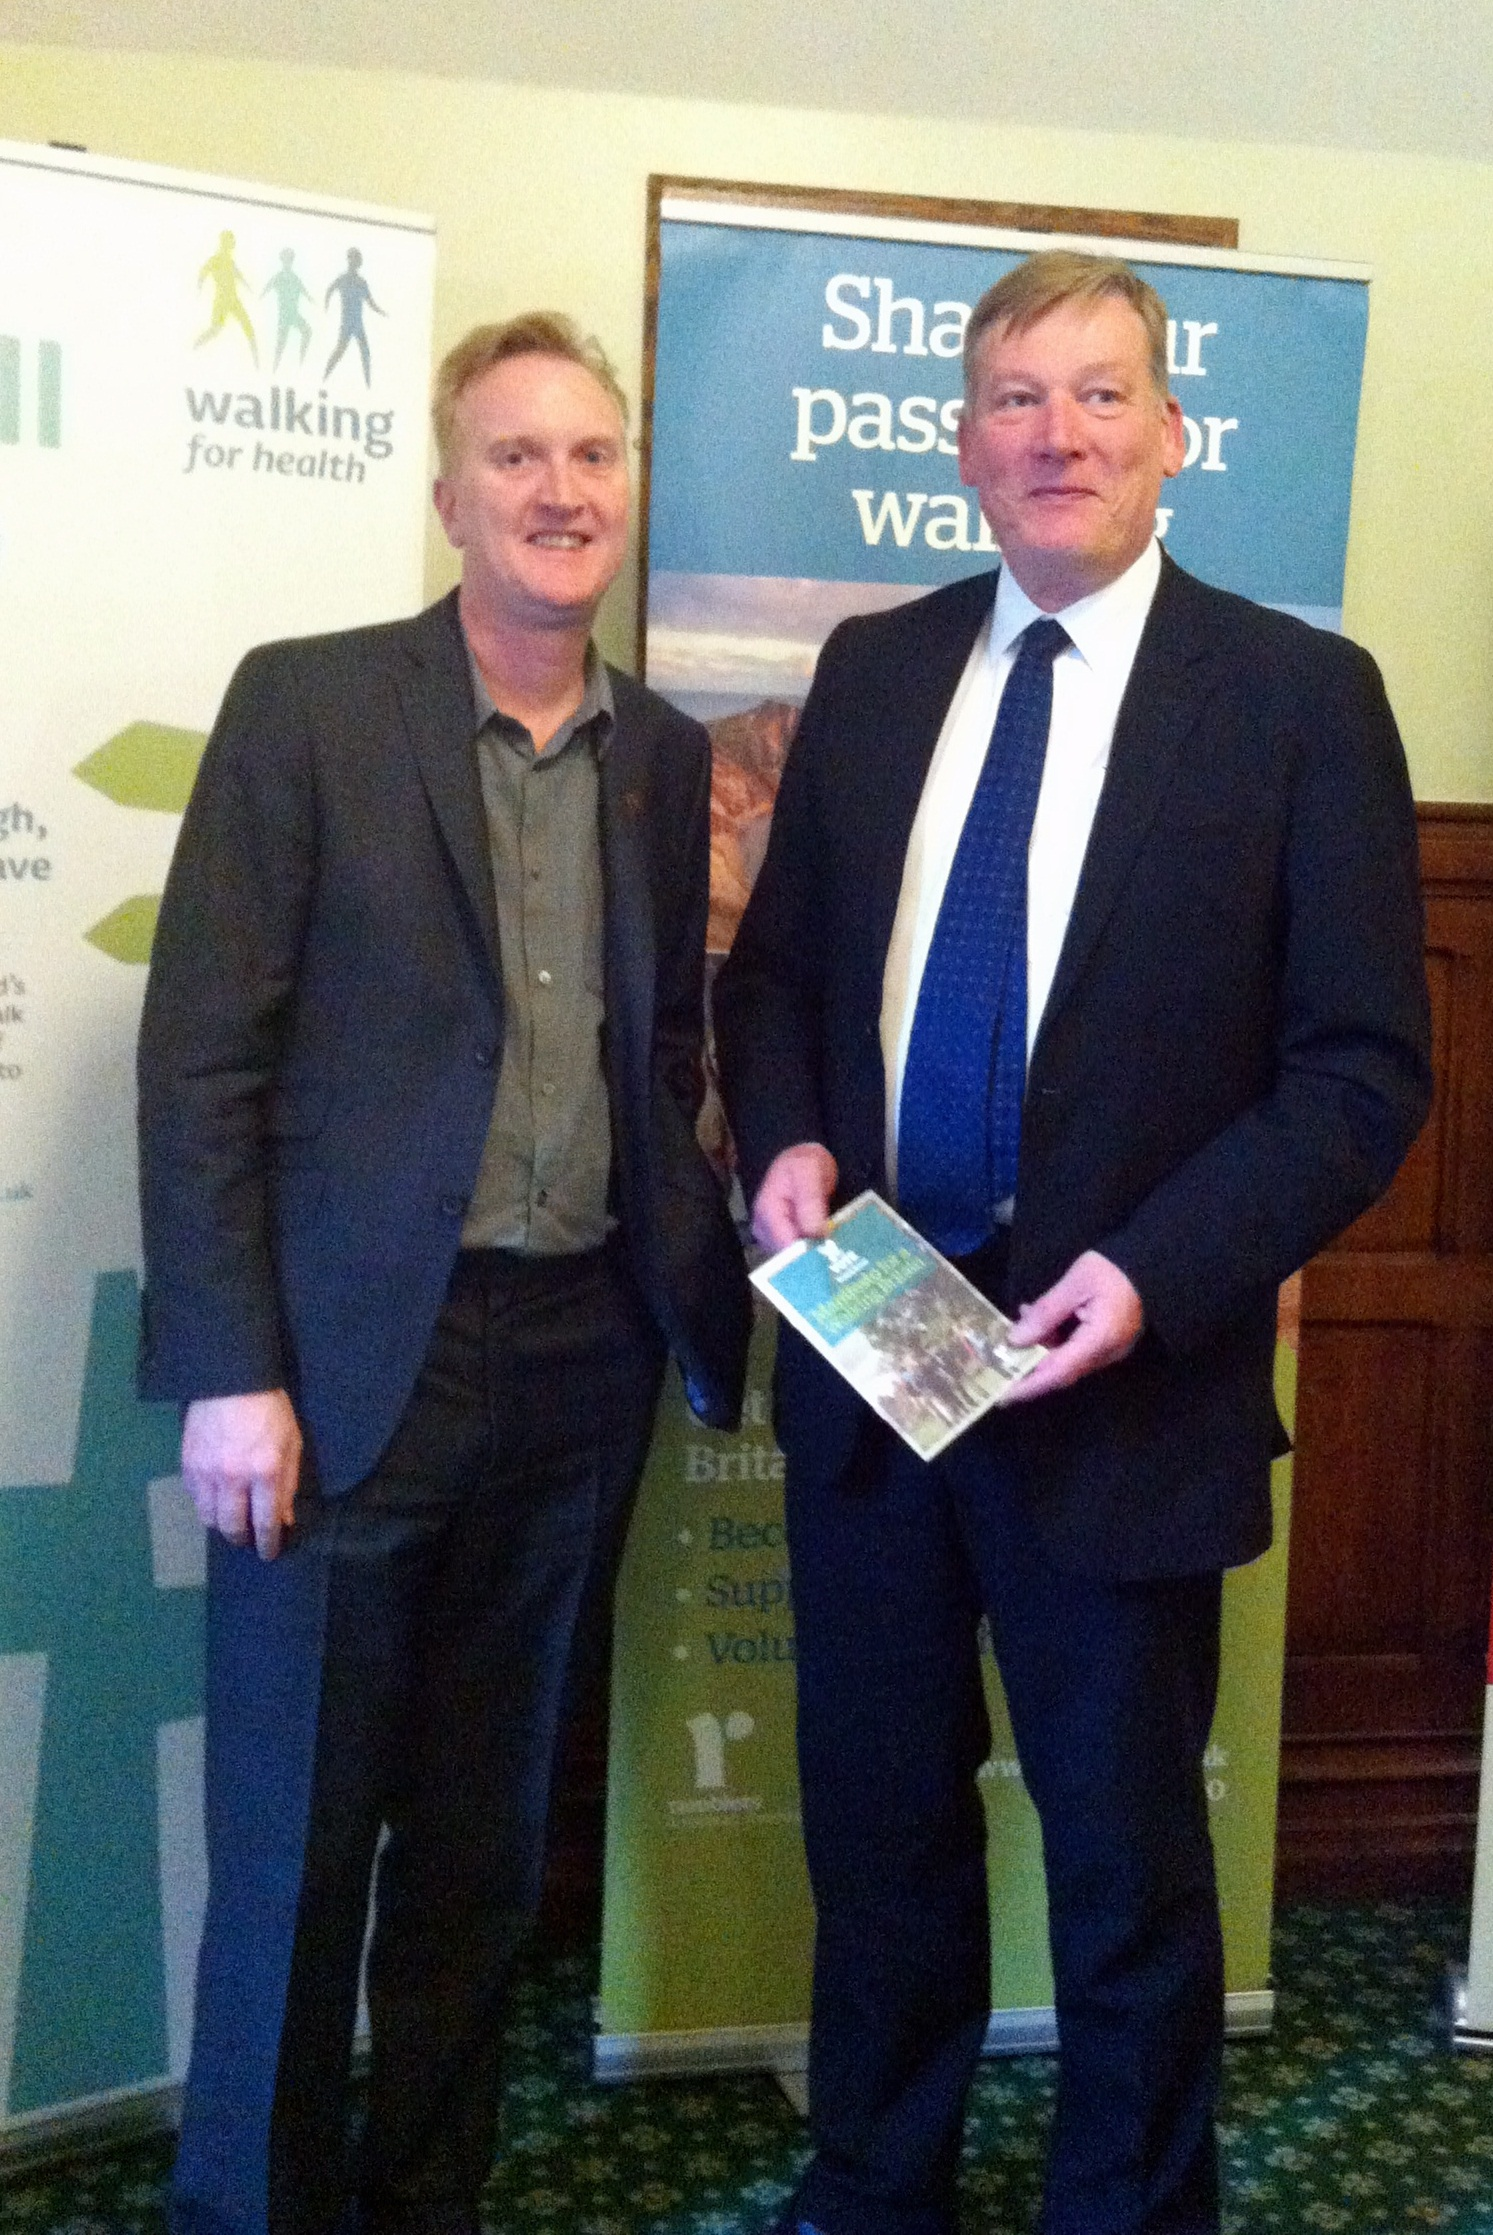 Ramblers Chief Executive Benedict Southworth, left, with Kris Hopkins MP